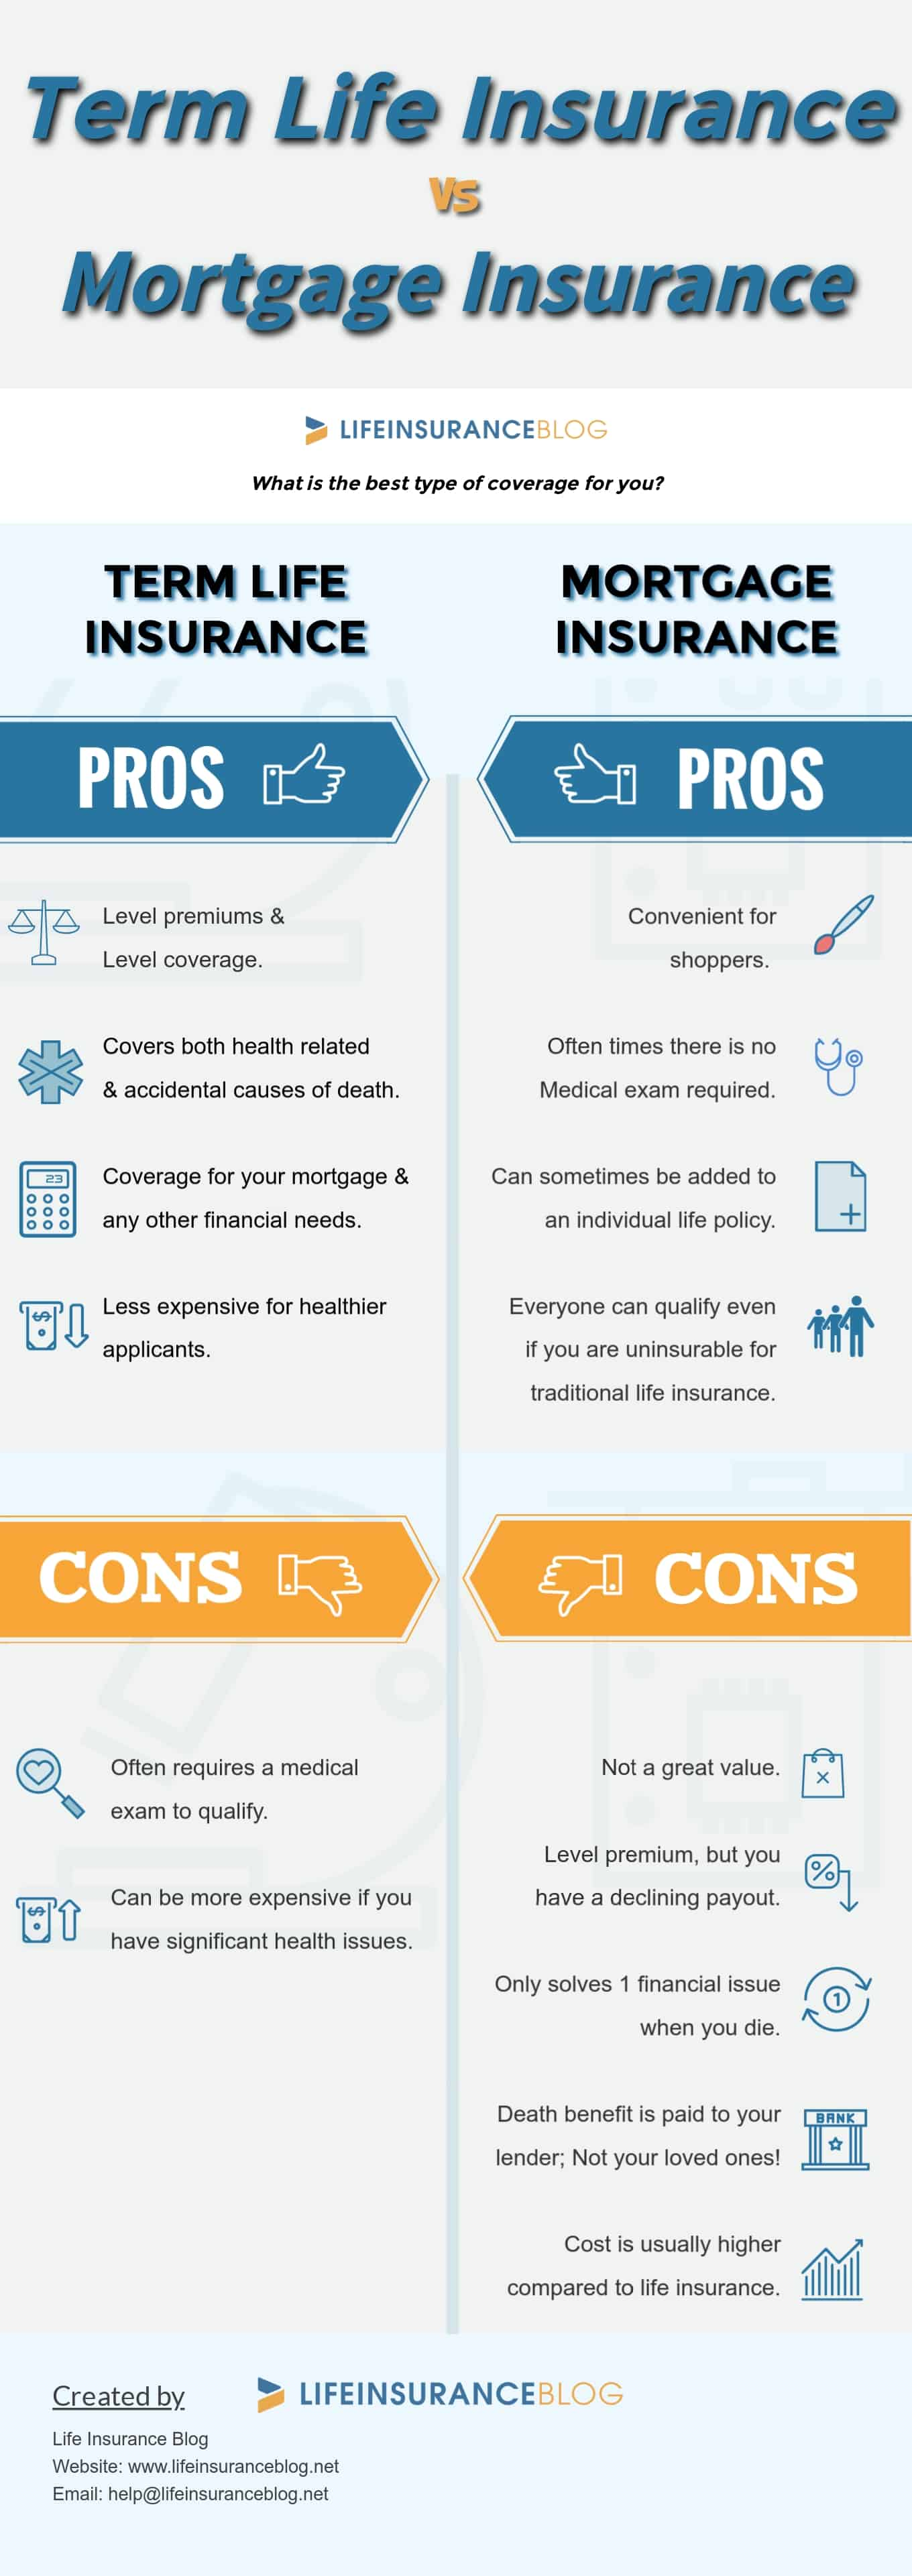 Mortgage Insurance vs Term Life Insurance